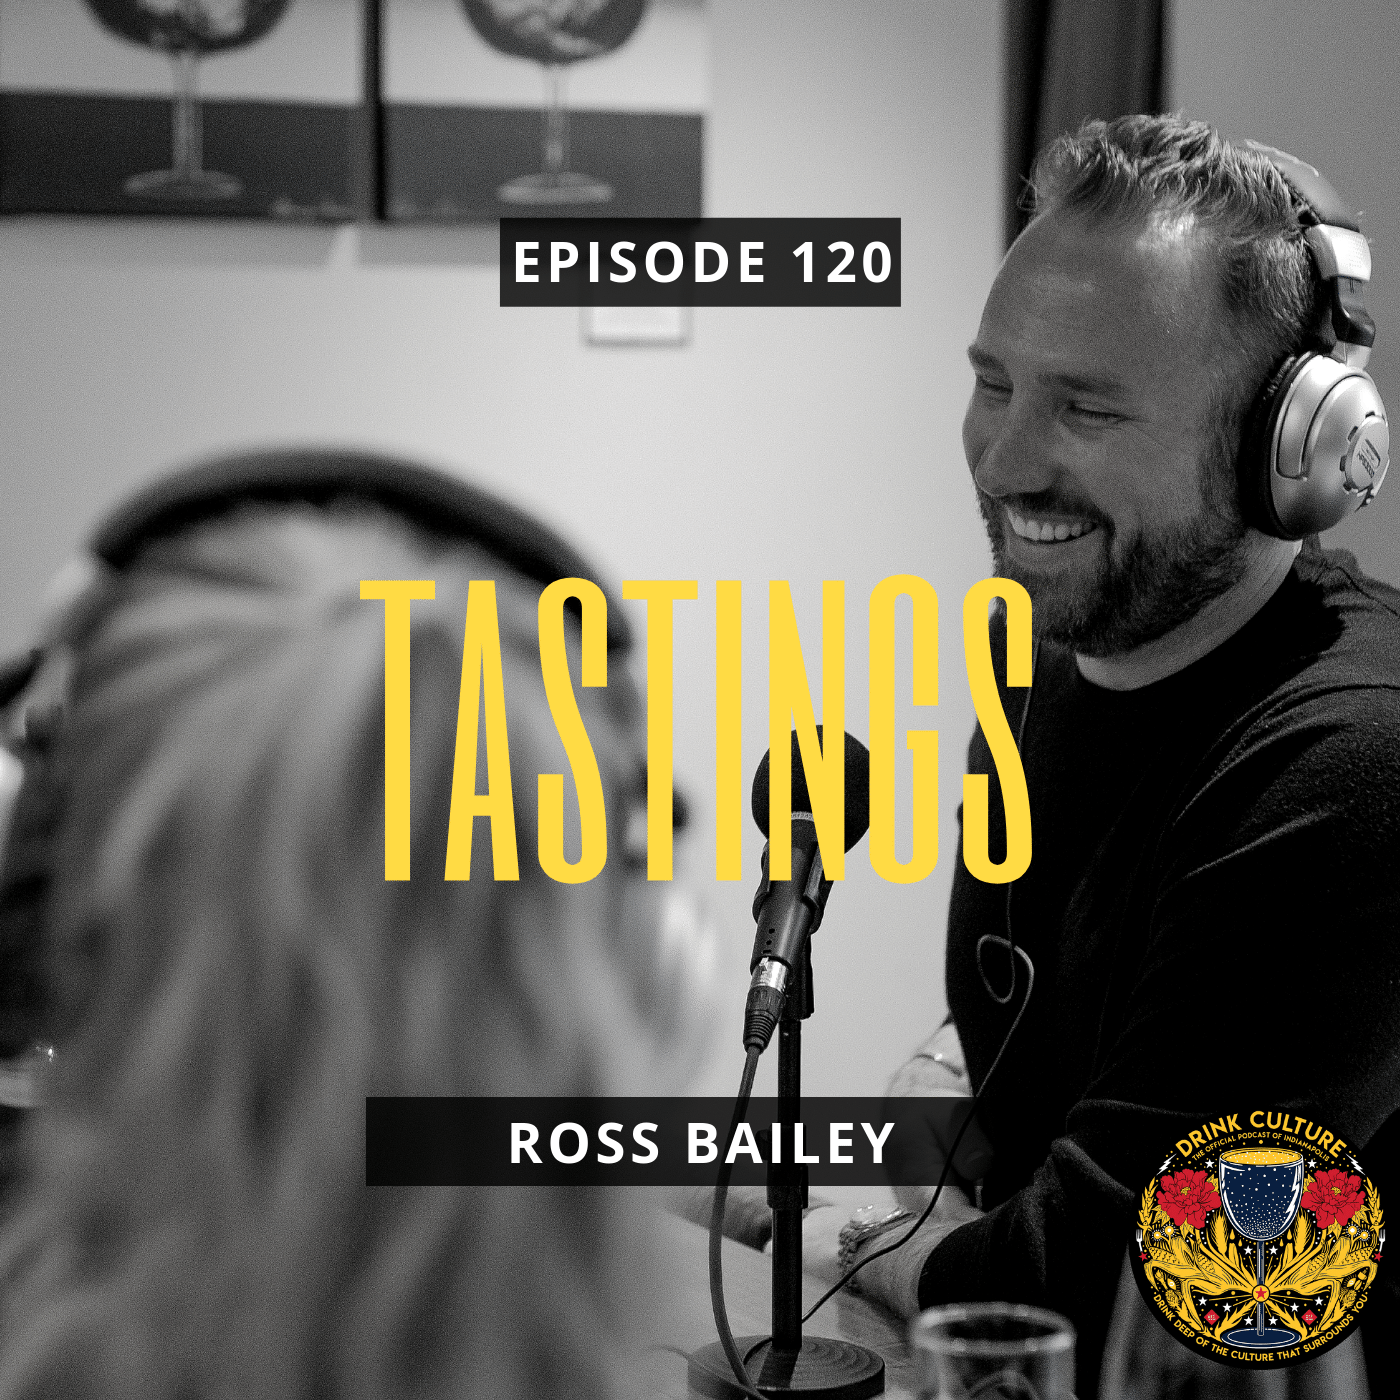 Episode 120: Tastings, Ross Bailey -